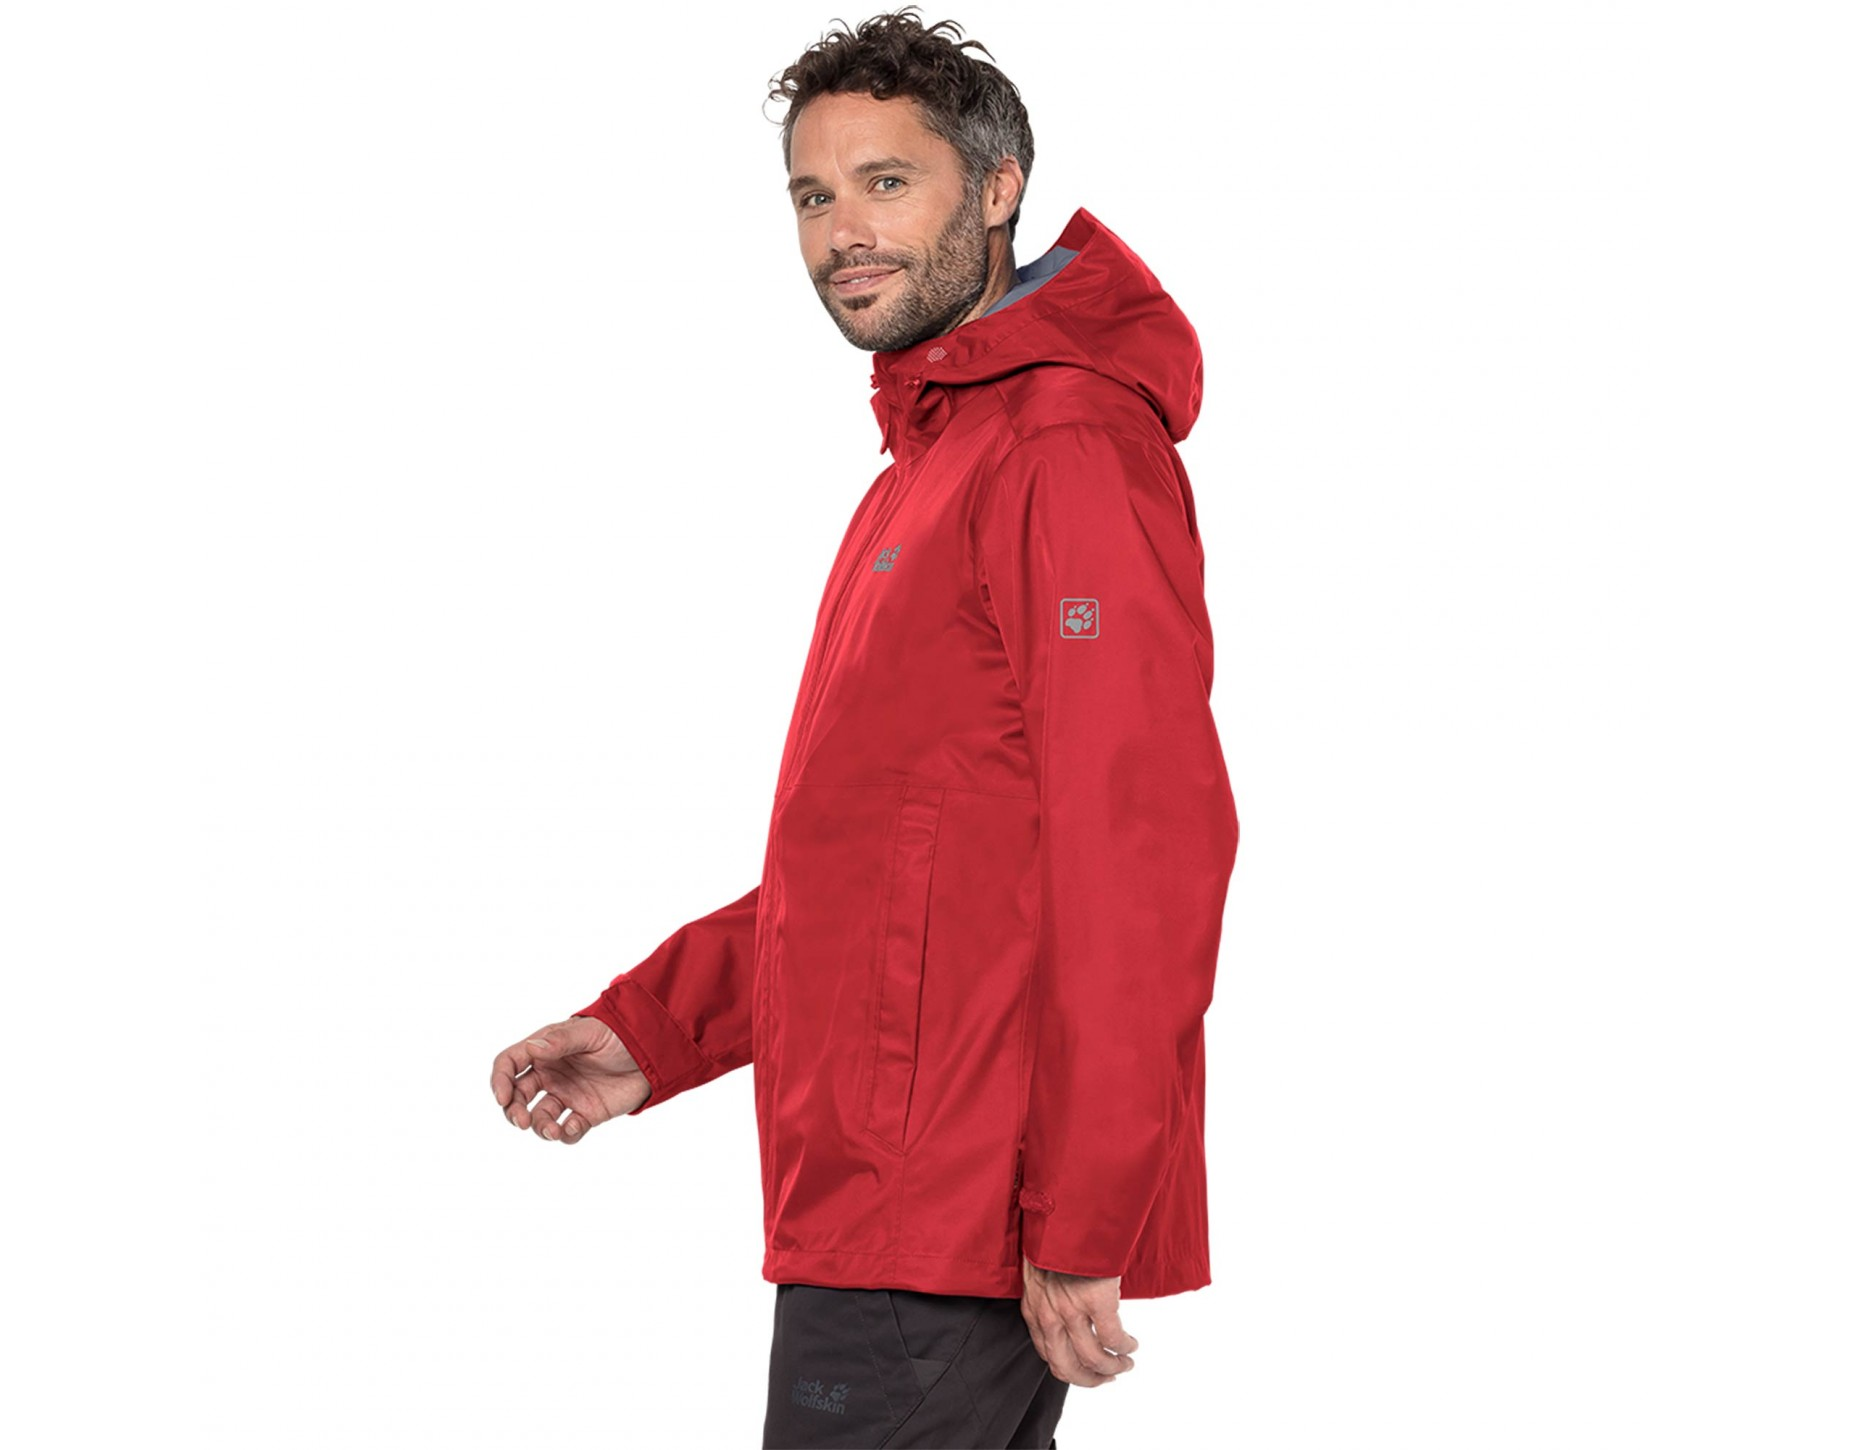 Jack wolfskin red and black jacket